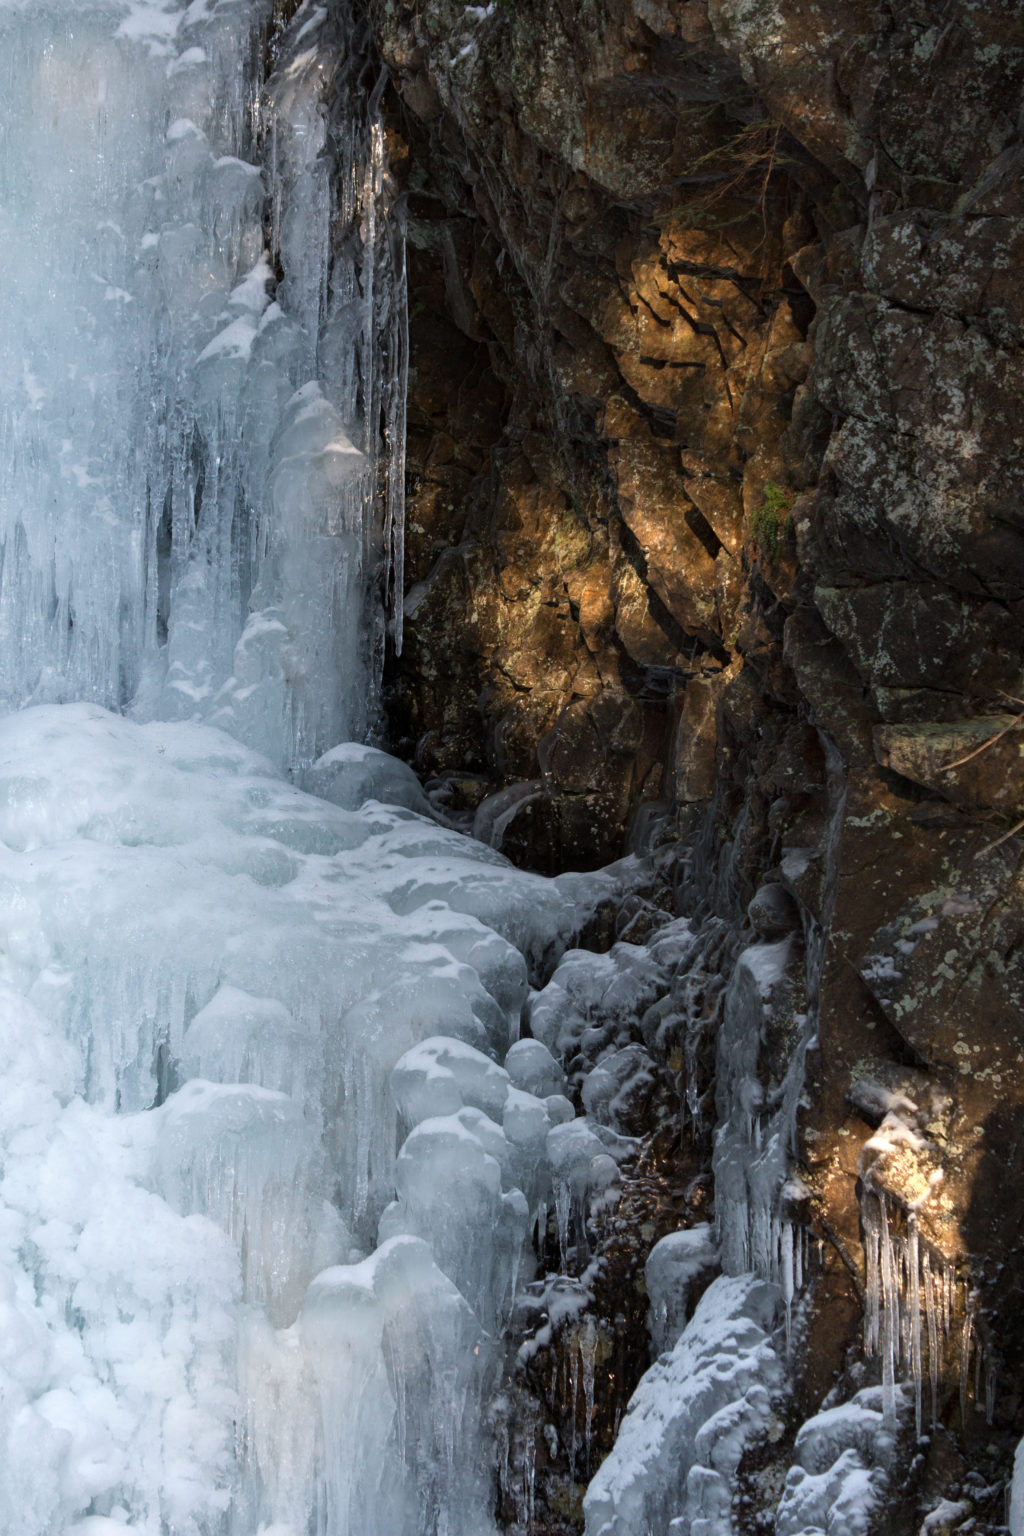 Frozen Waterfall on the Rocks